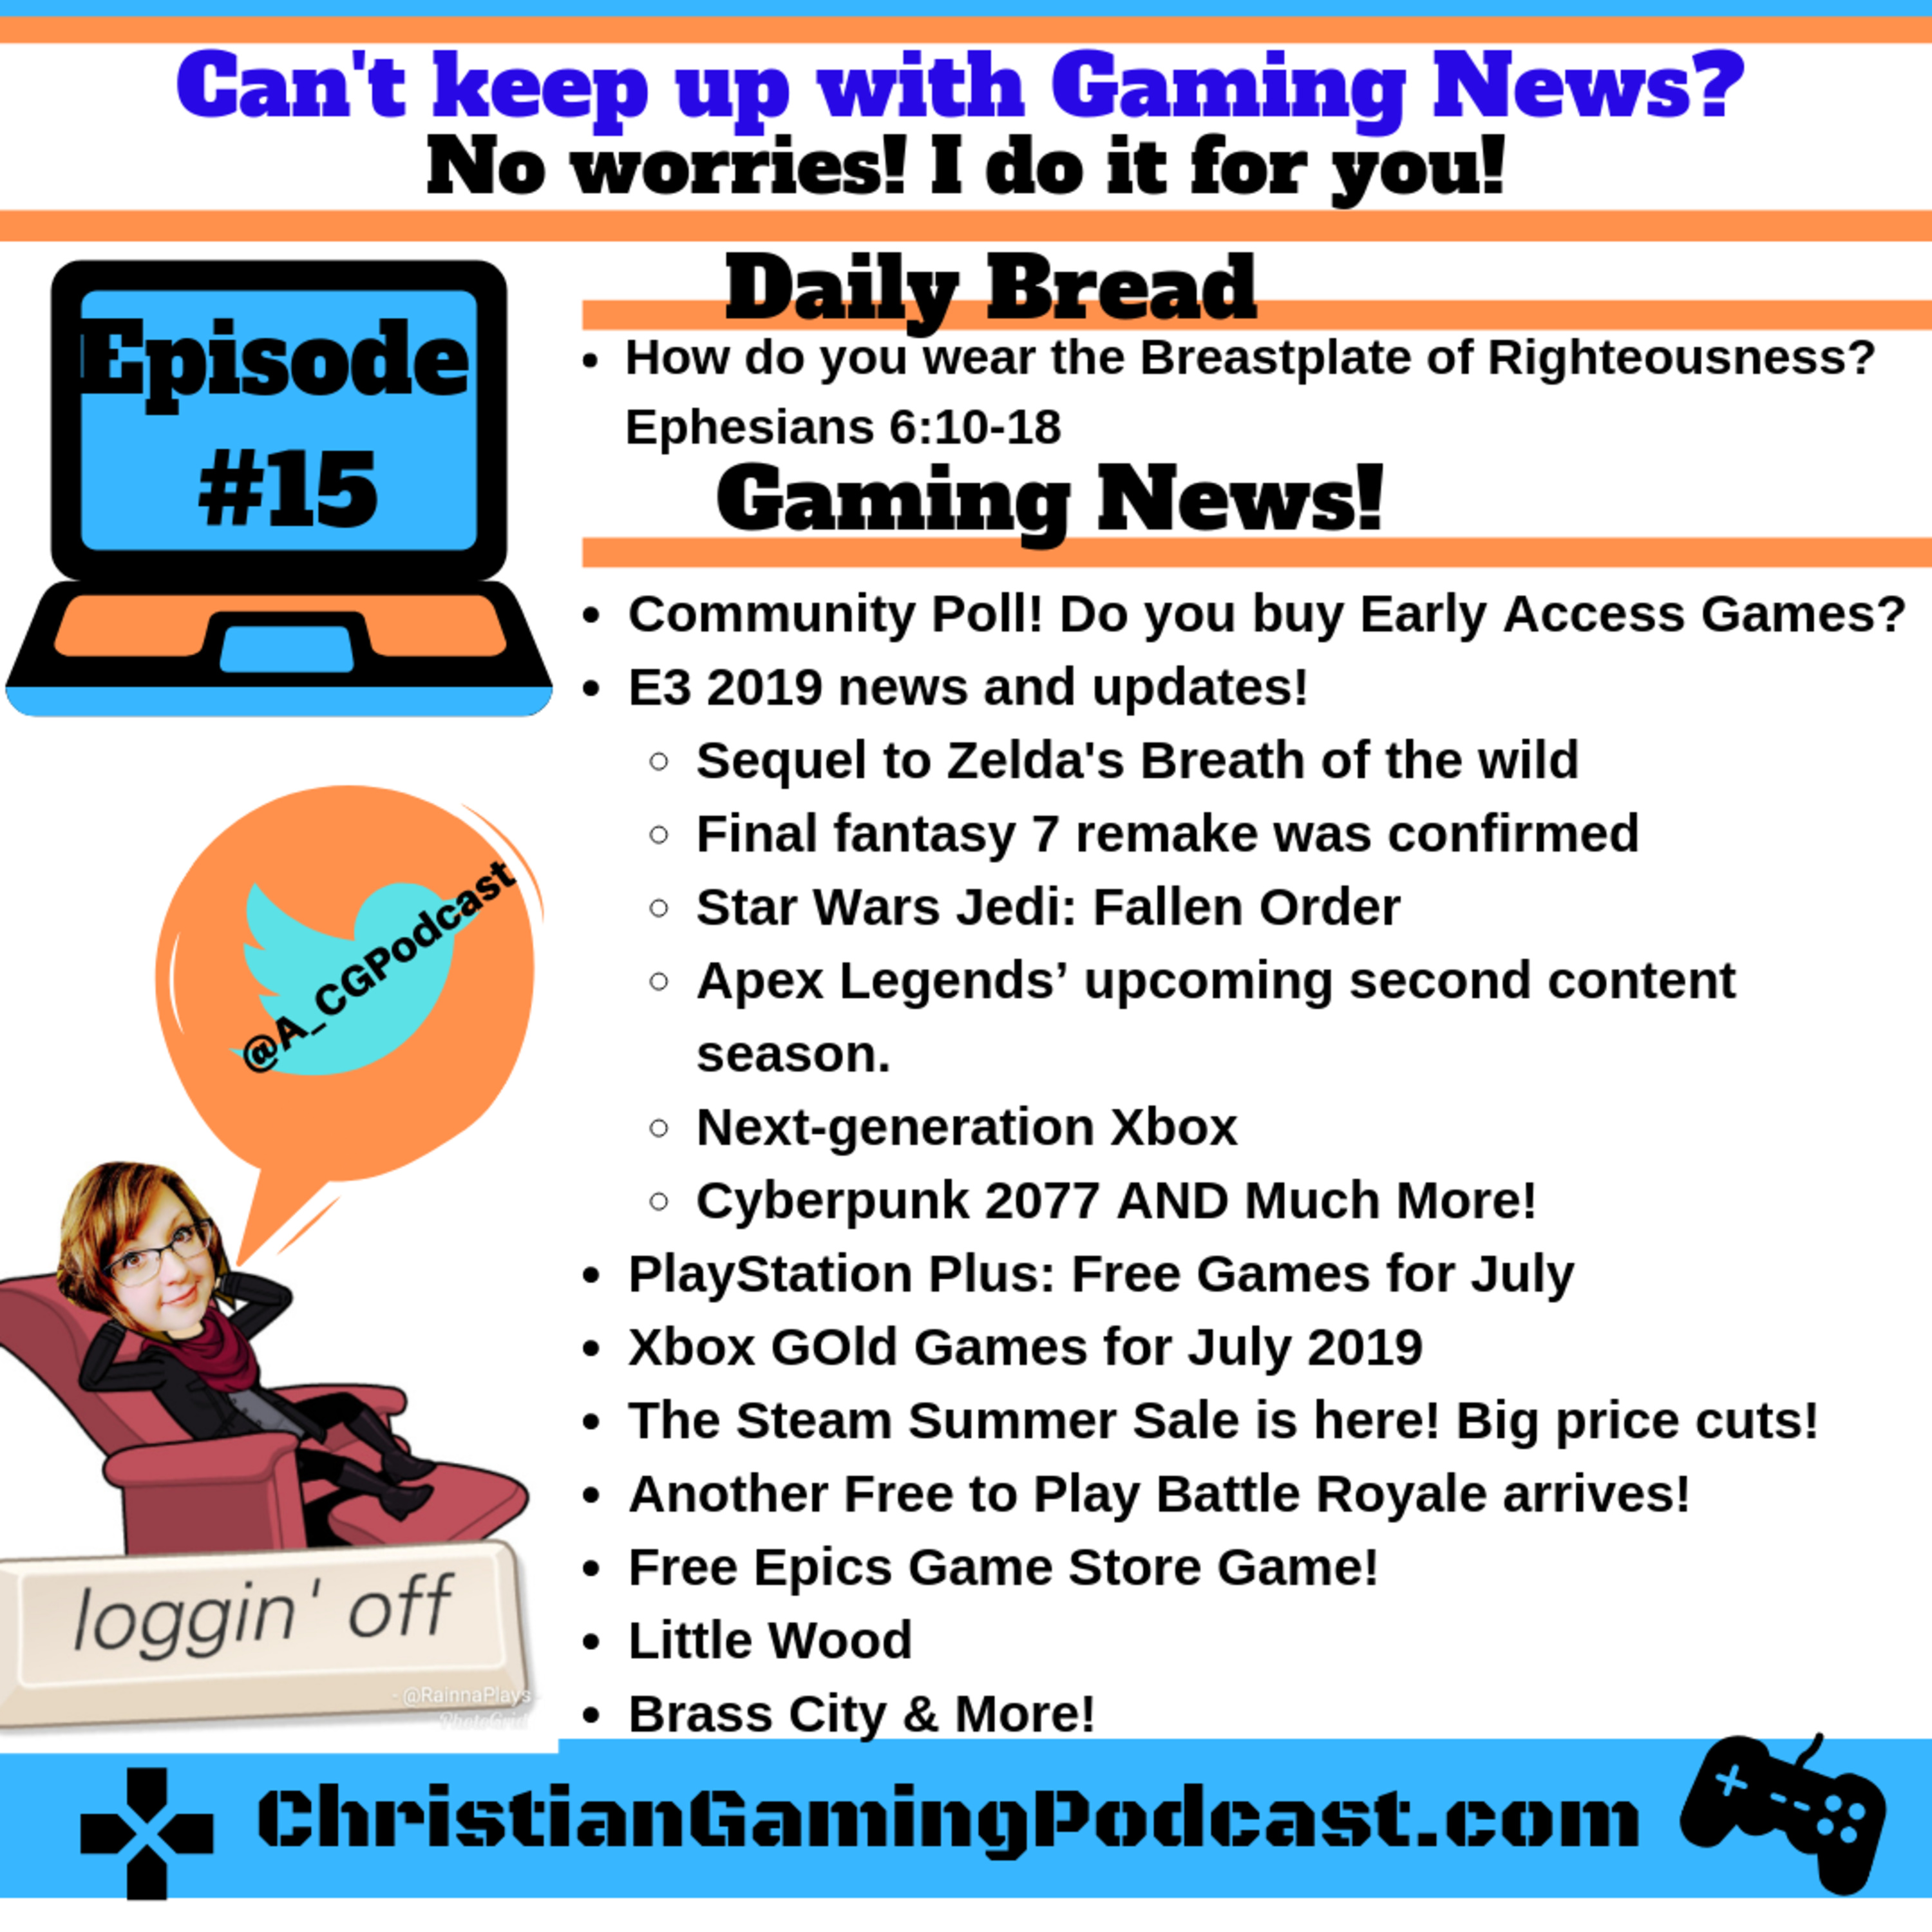 Christian Gaming Podcast 15: E3 2019 News & Updates, Console freebies for July, and how to wear your Breastplate of Righteousness! Bonus Blooper Reel!